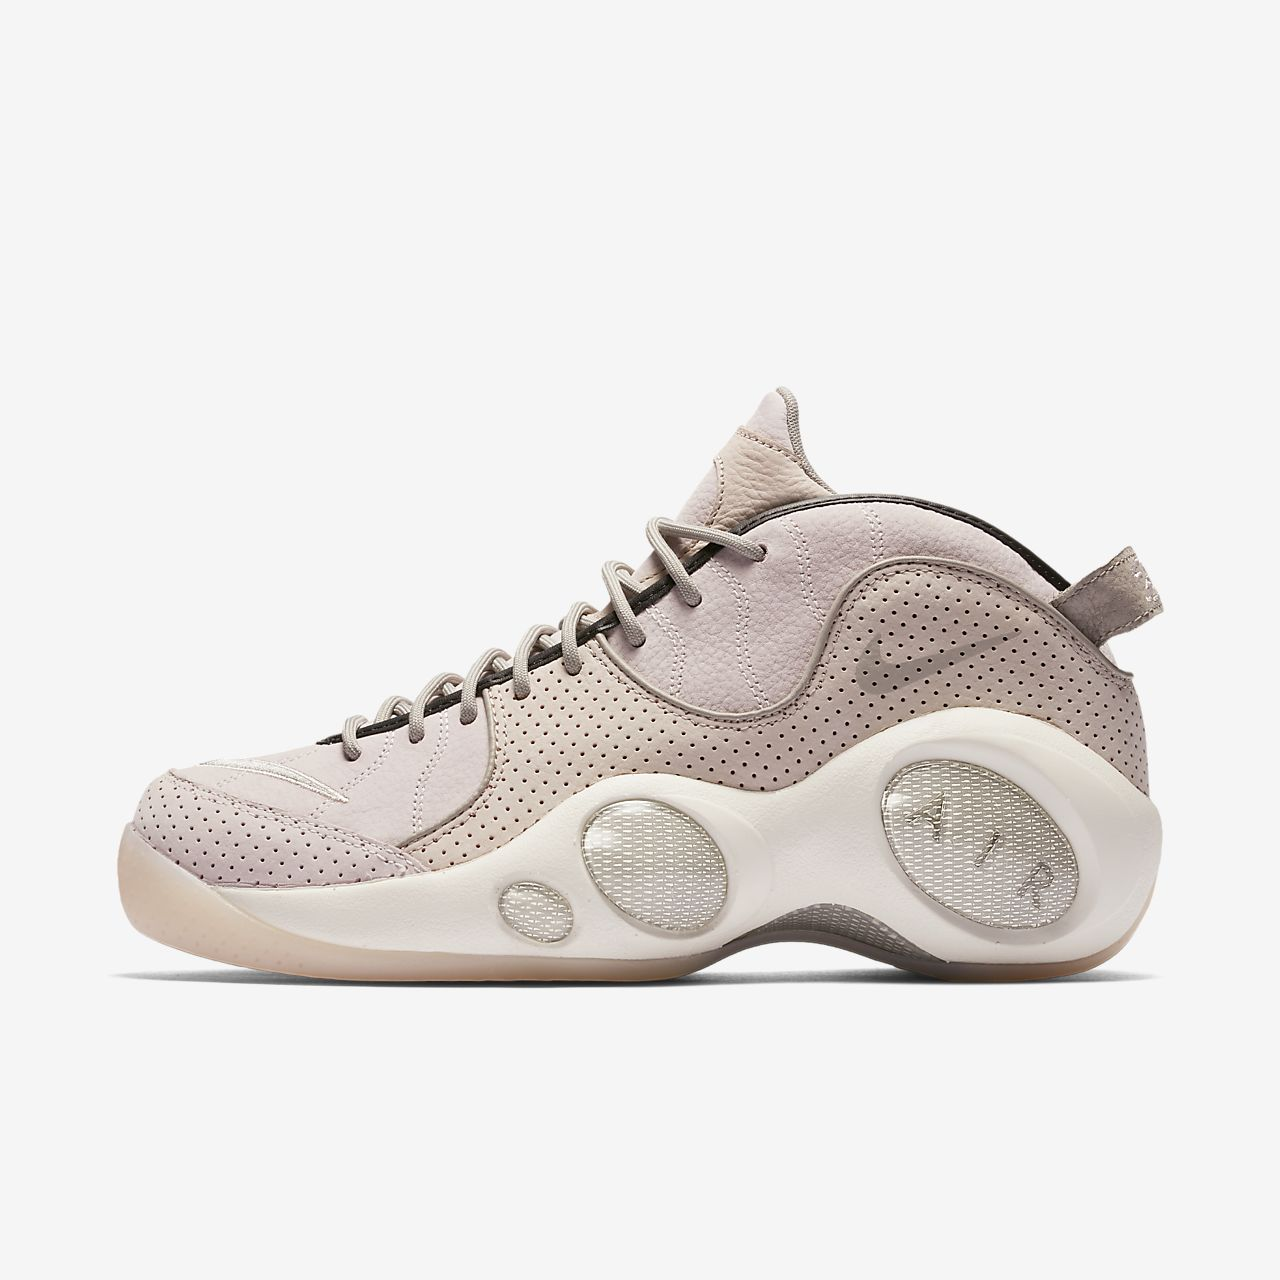 outlet store 5c6c2 25aa1 ... Nike Air Zoom Flight 95 Herenschoen